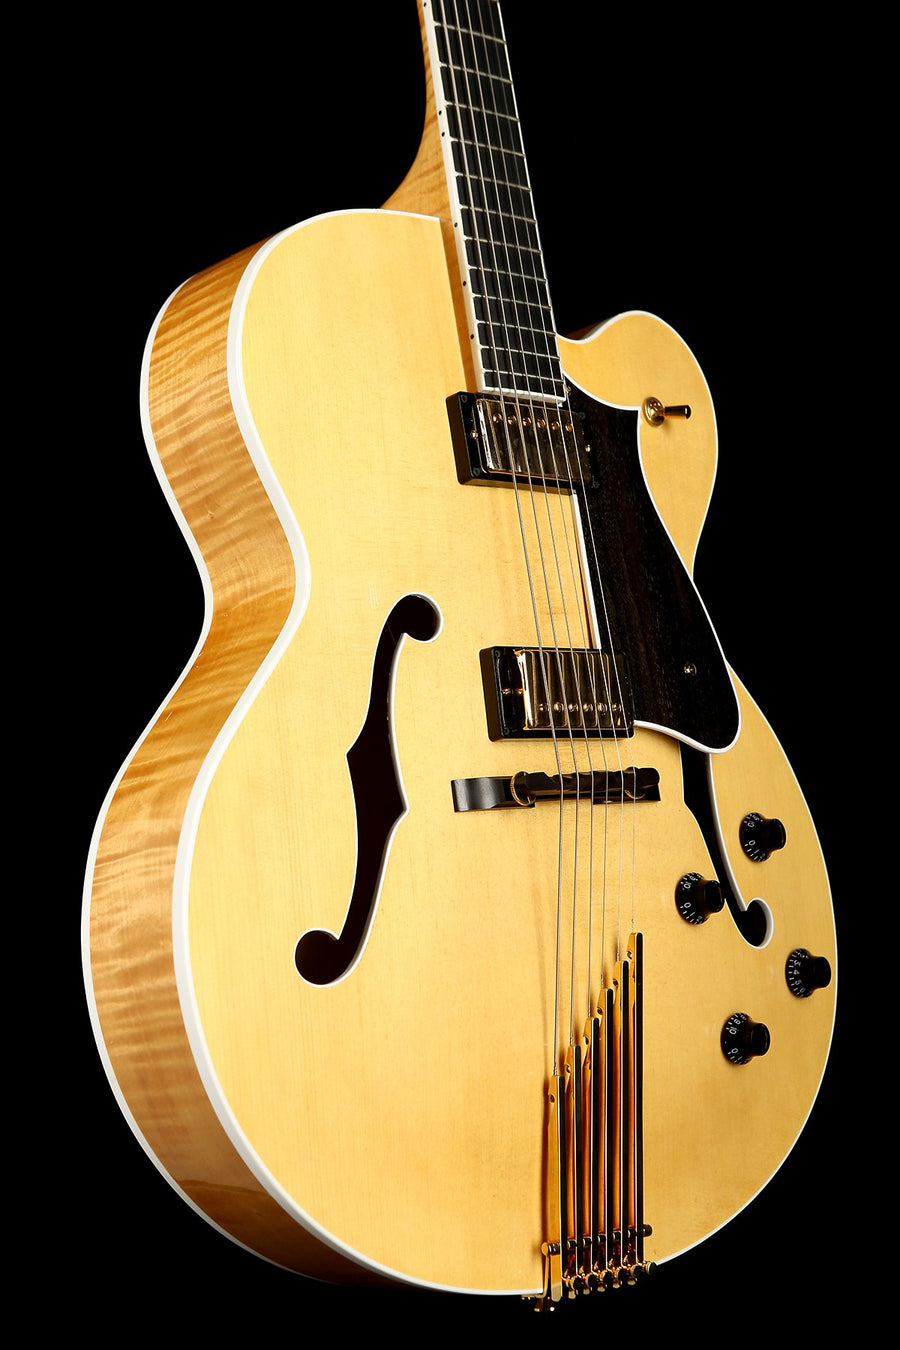 Heritage Eagle Classic Natural Archtop Electric Guitar